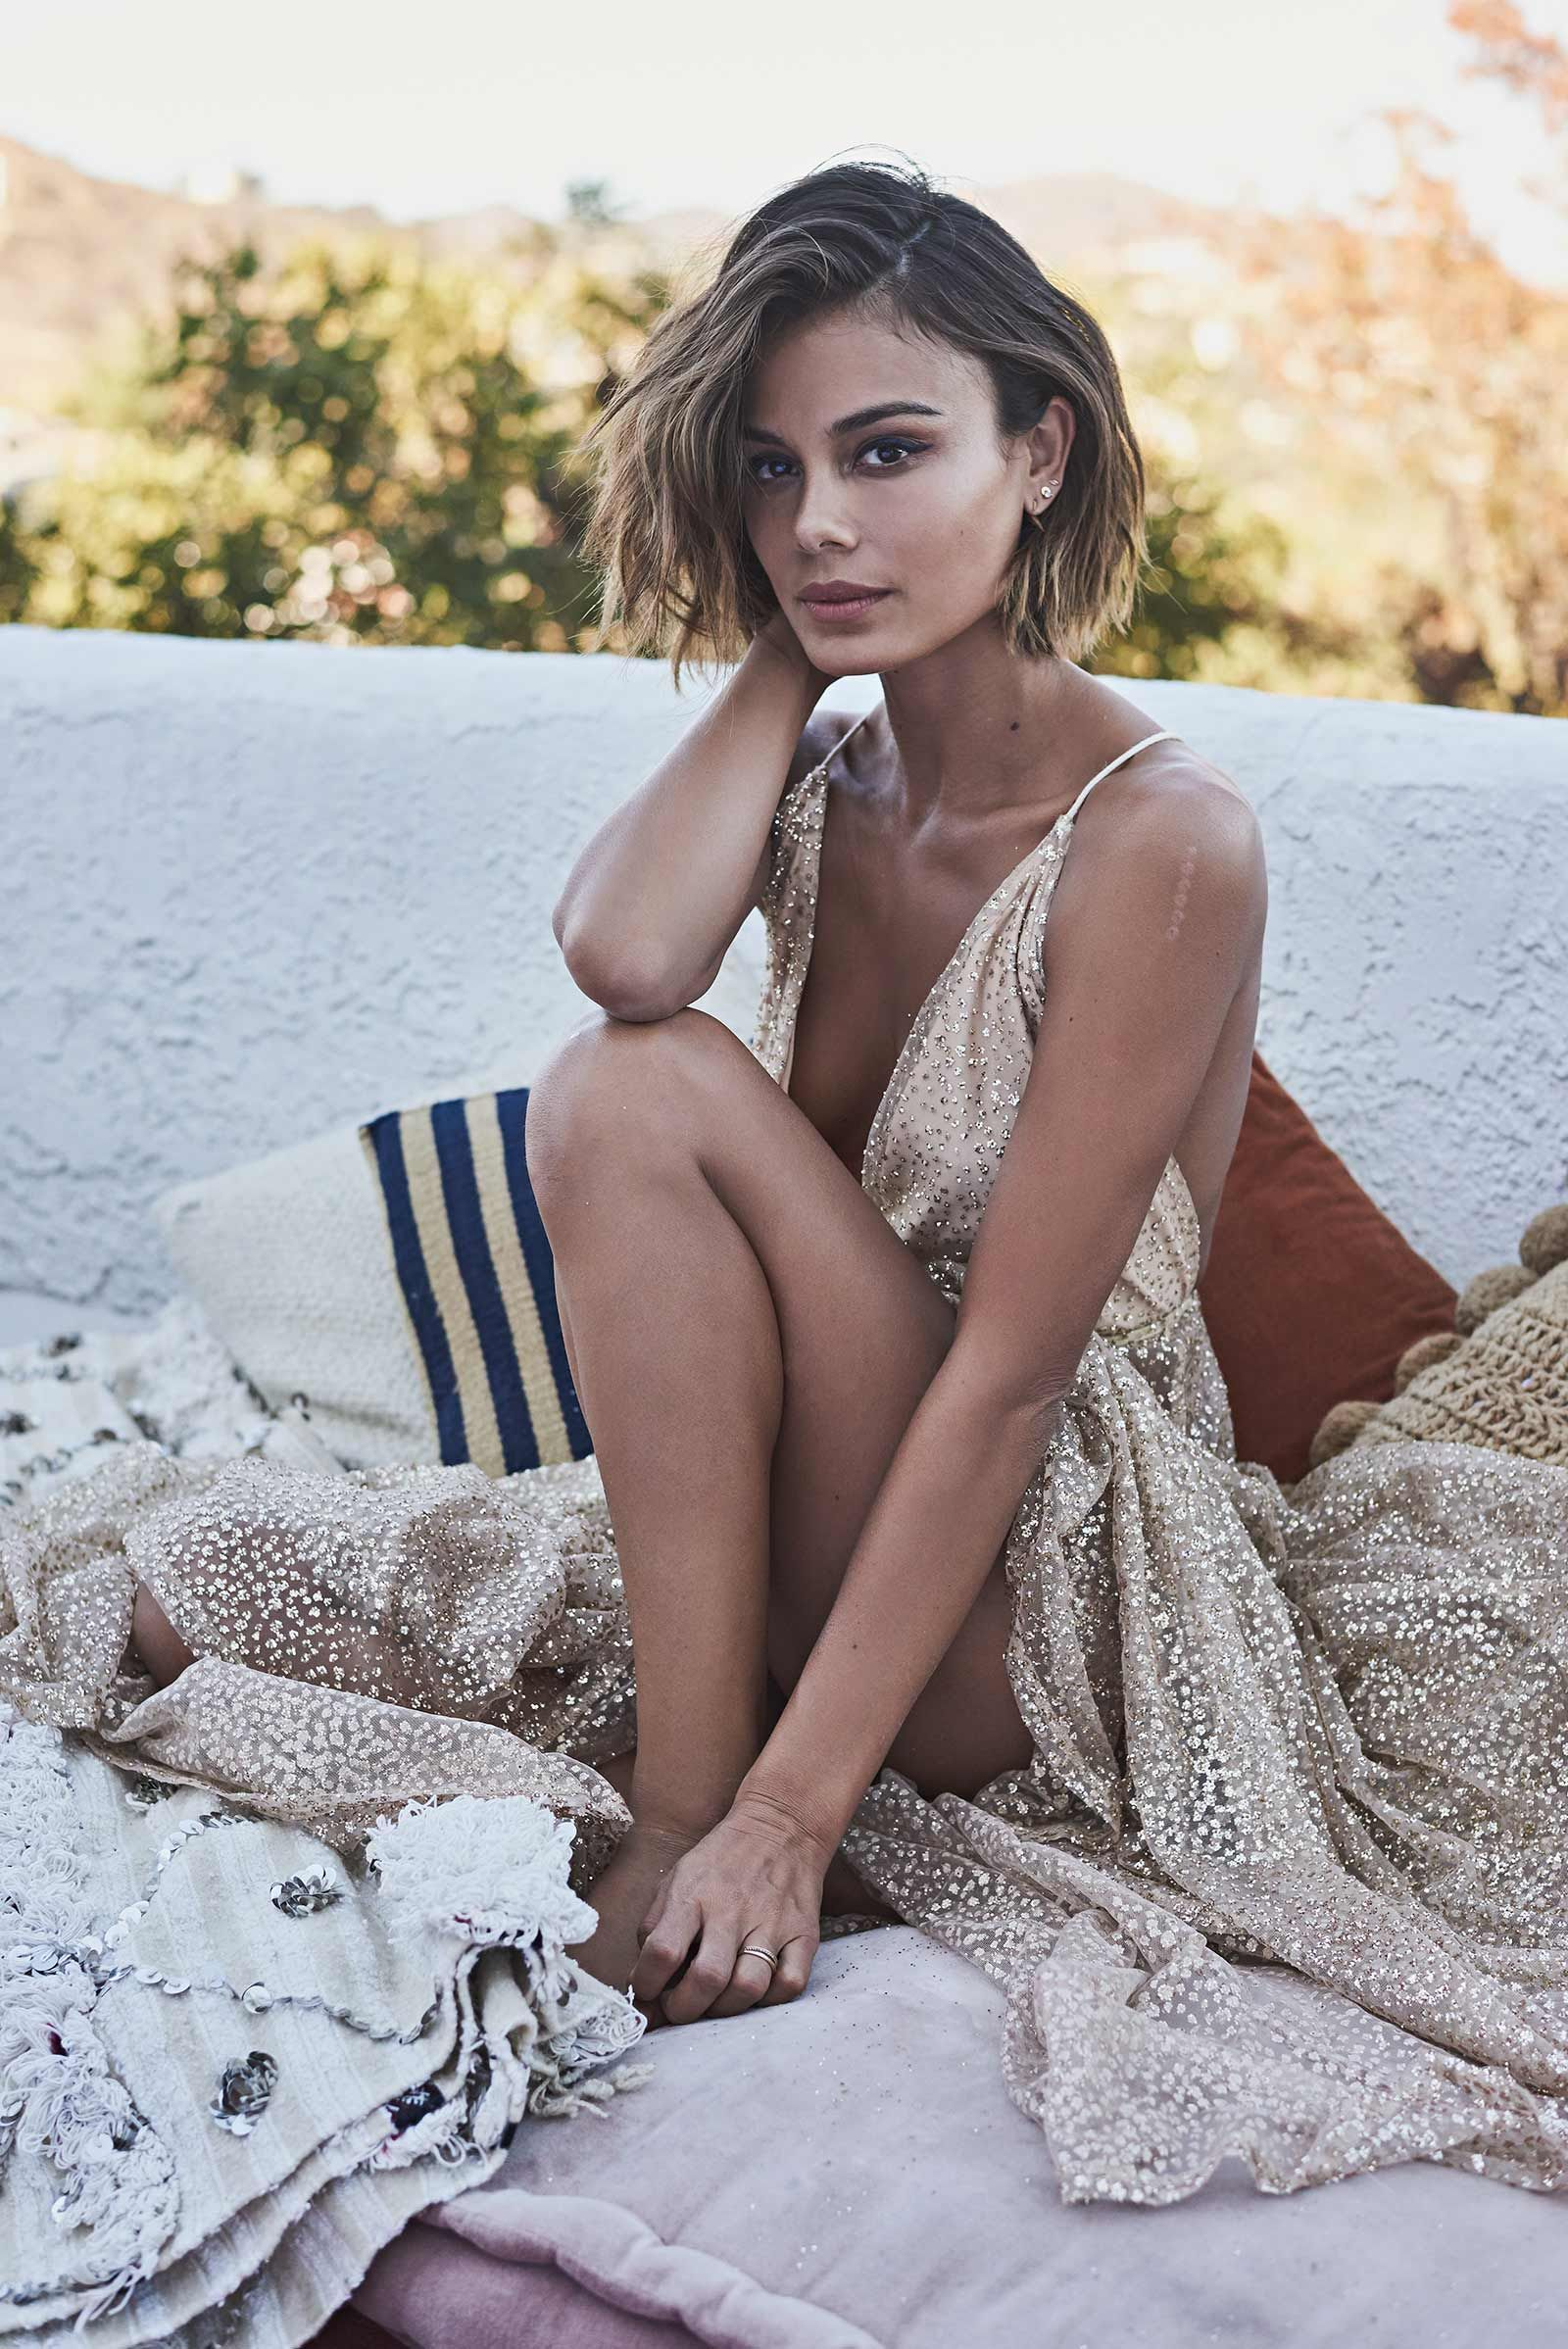 AT HOME WITH NATHALIE KELLEY | A Conscious Collect